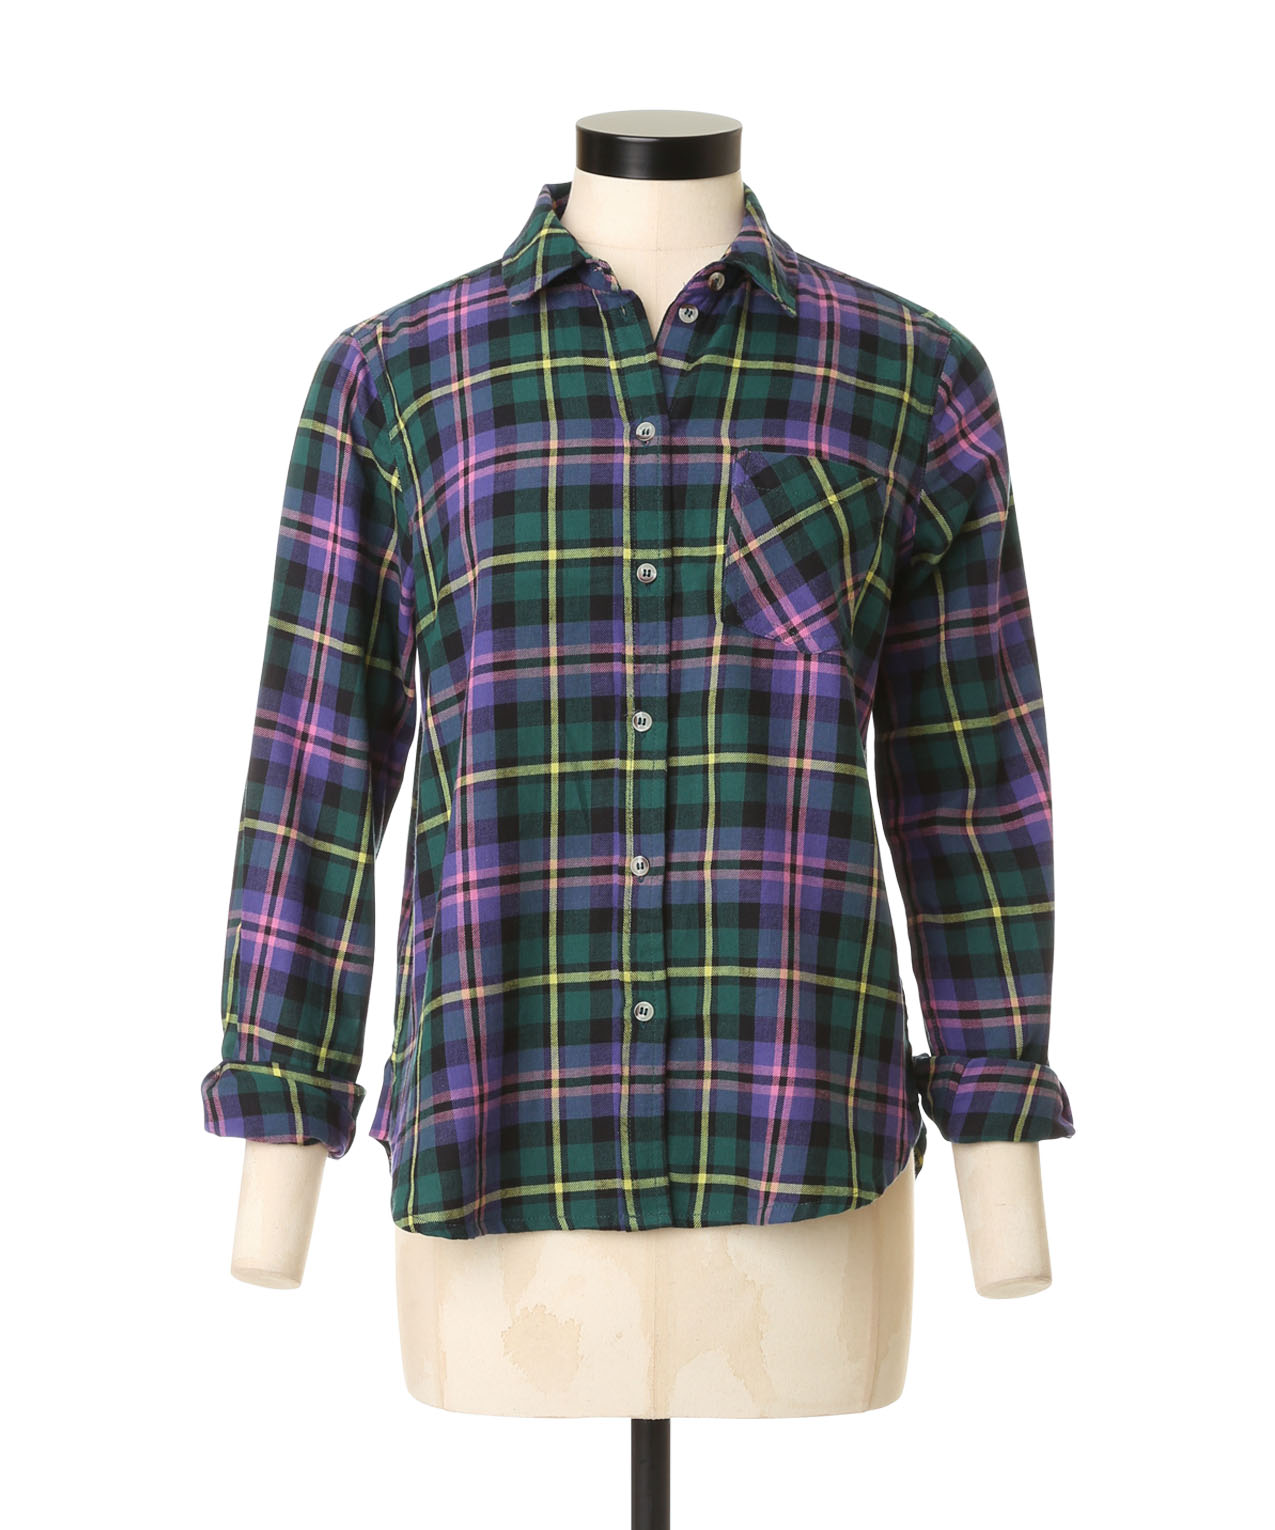 Colourful plaid shirt dex for Womens green checked shirt